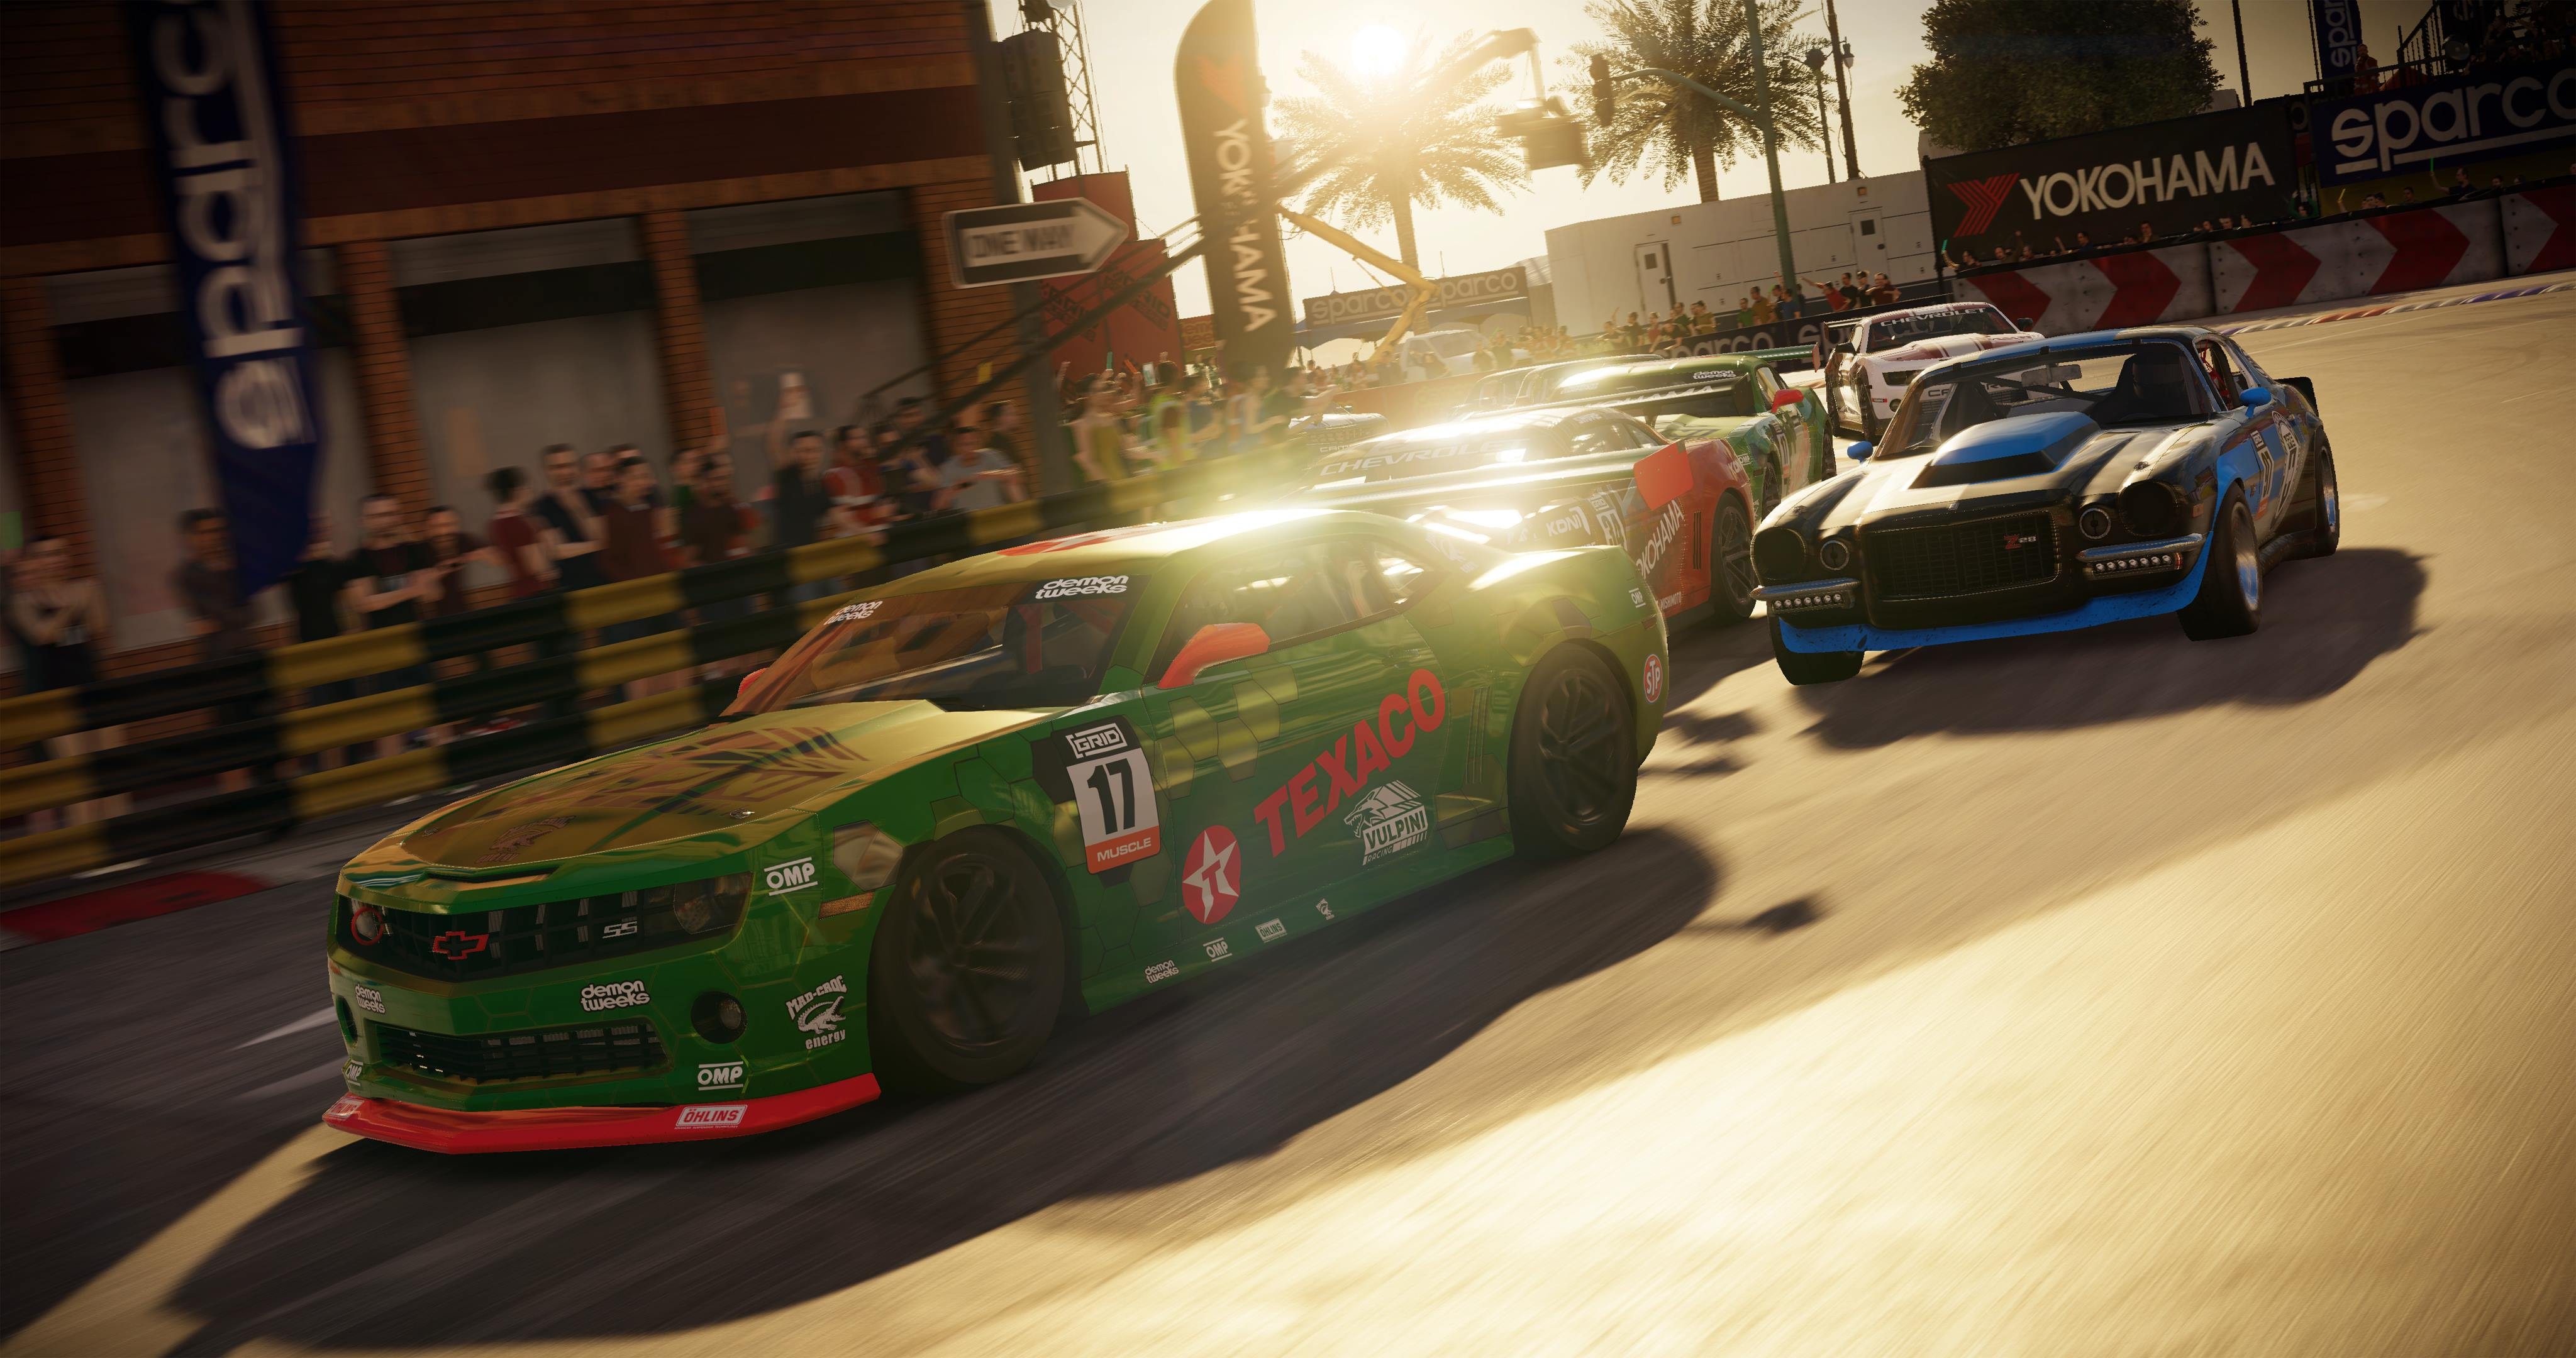 All Types Of Cars >> Codemasters Announces GRID For PS4, Xbox One and PC | Gaming Union